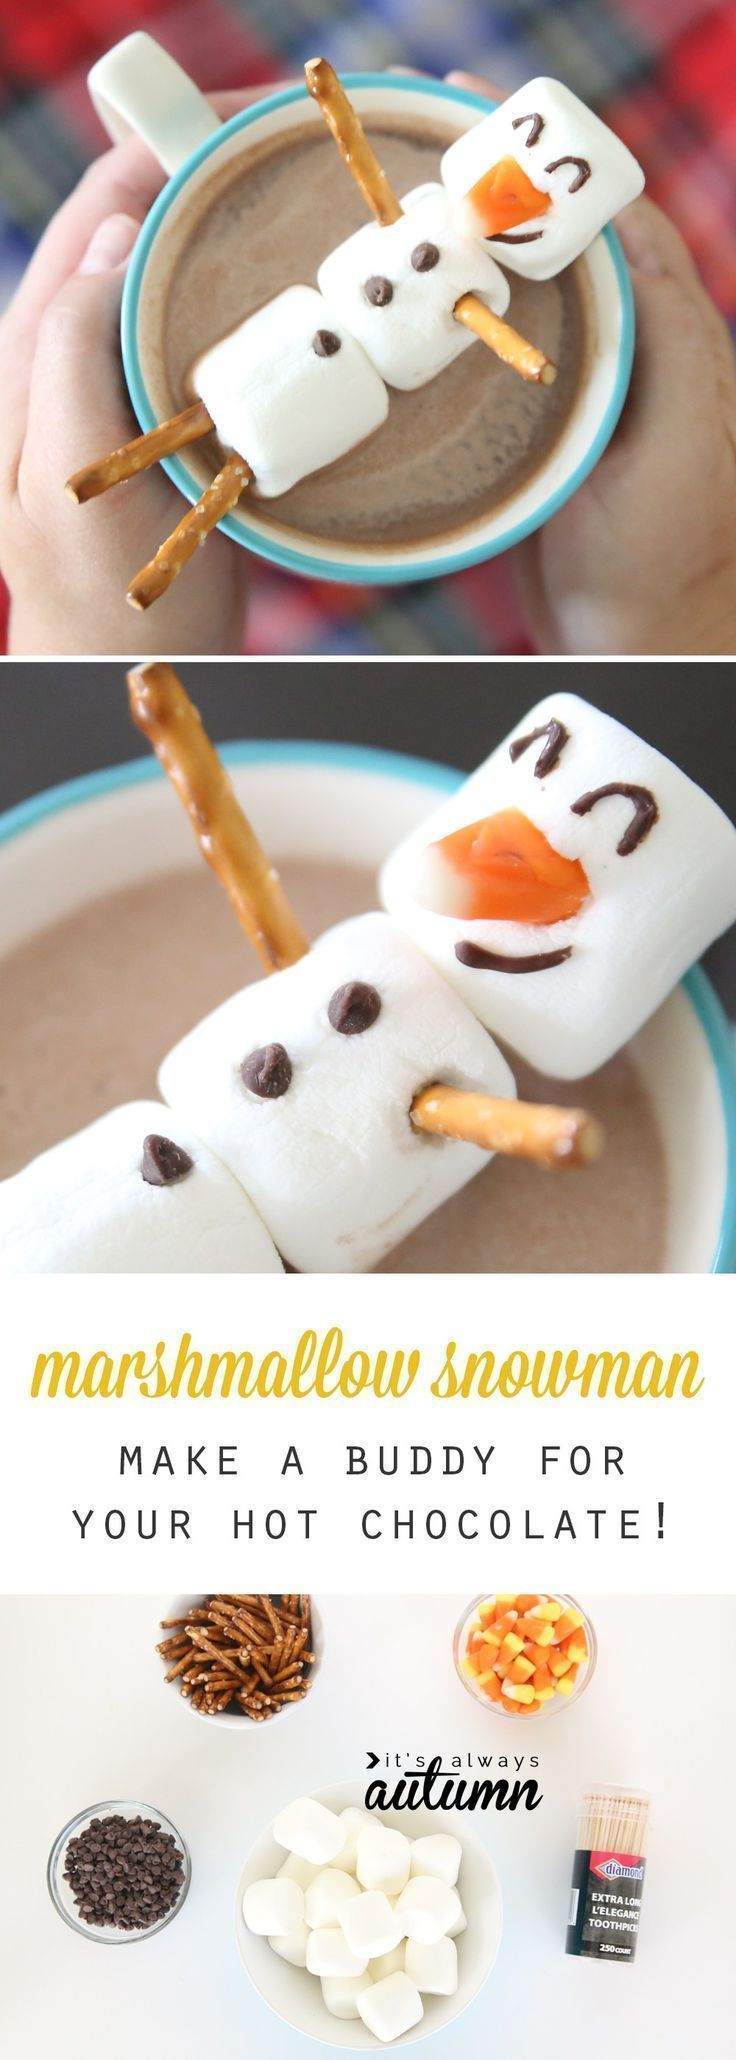 30 Ways To Make Your Home Pinterest Perfect: 2626 Best Images About *Kid Friendly - Snow Play And Winter Fun! On Pinterest